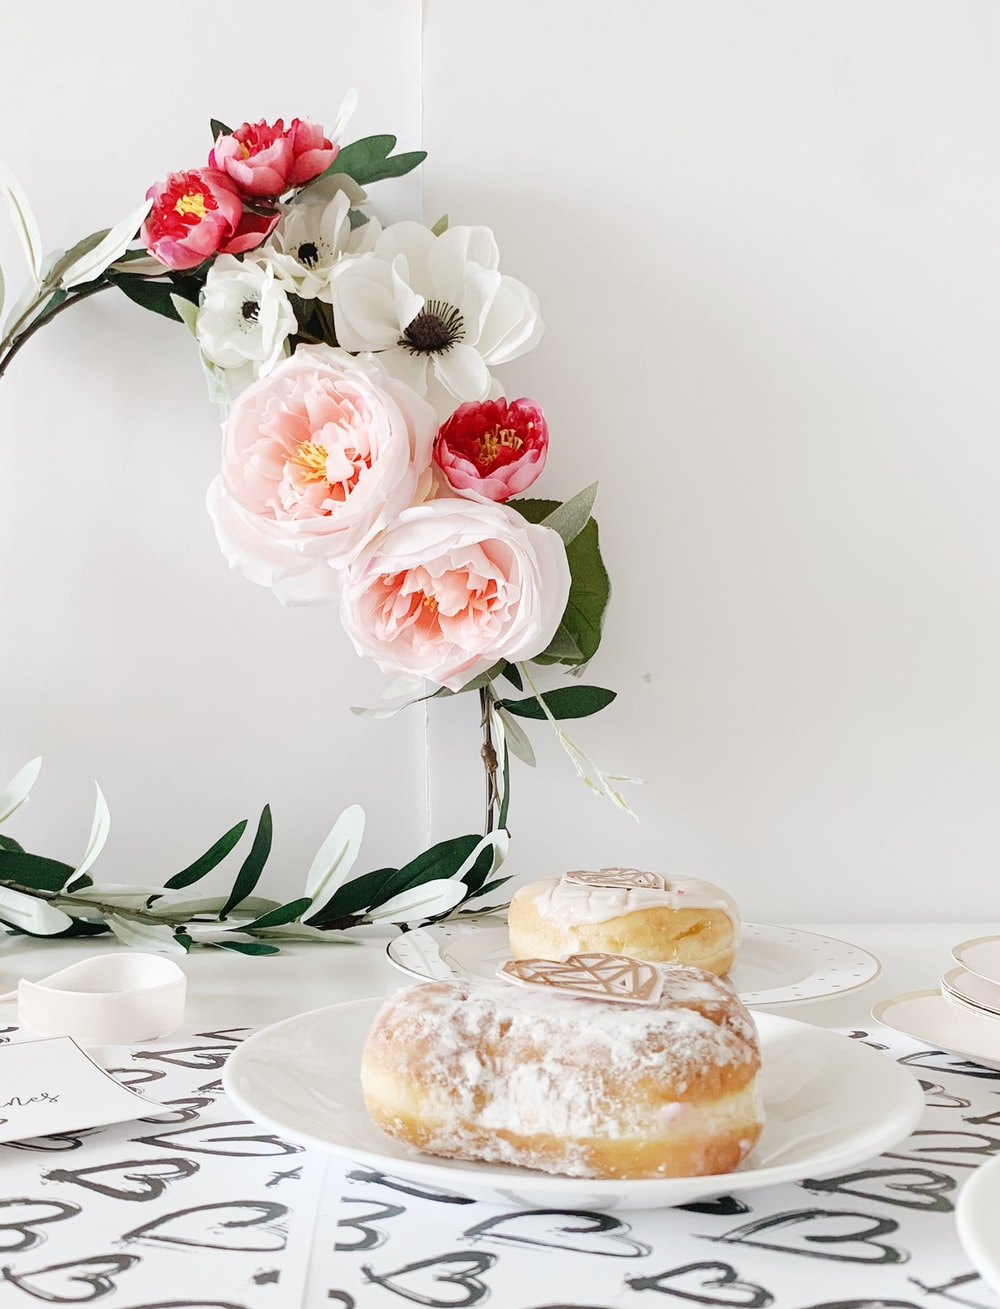 two doughtnuts on white ceramic plates beside petaled flowers